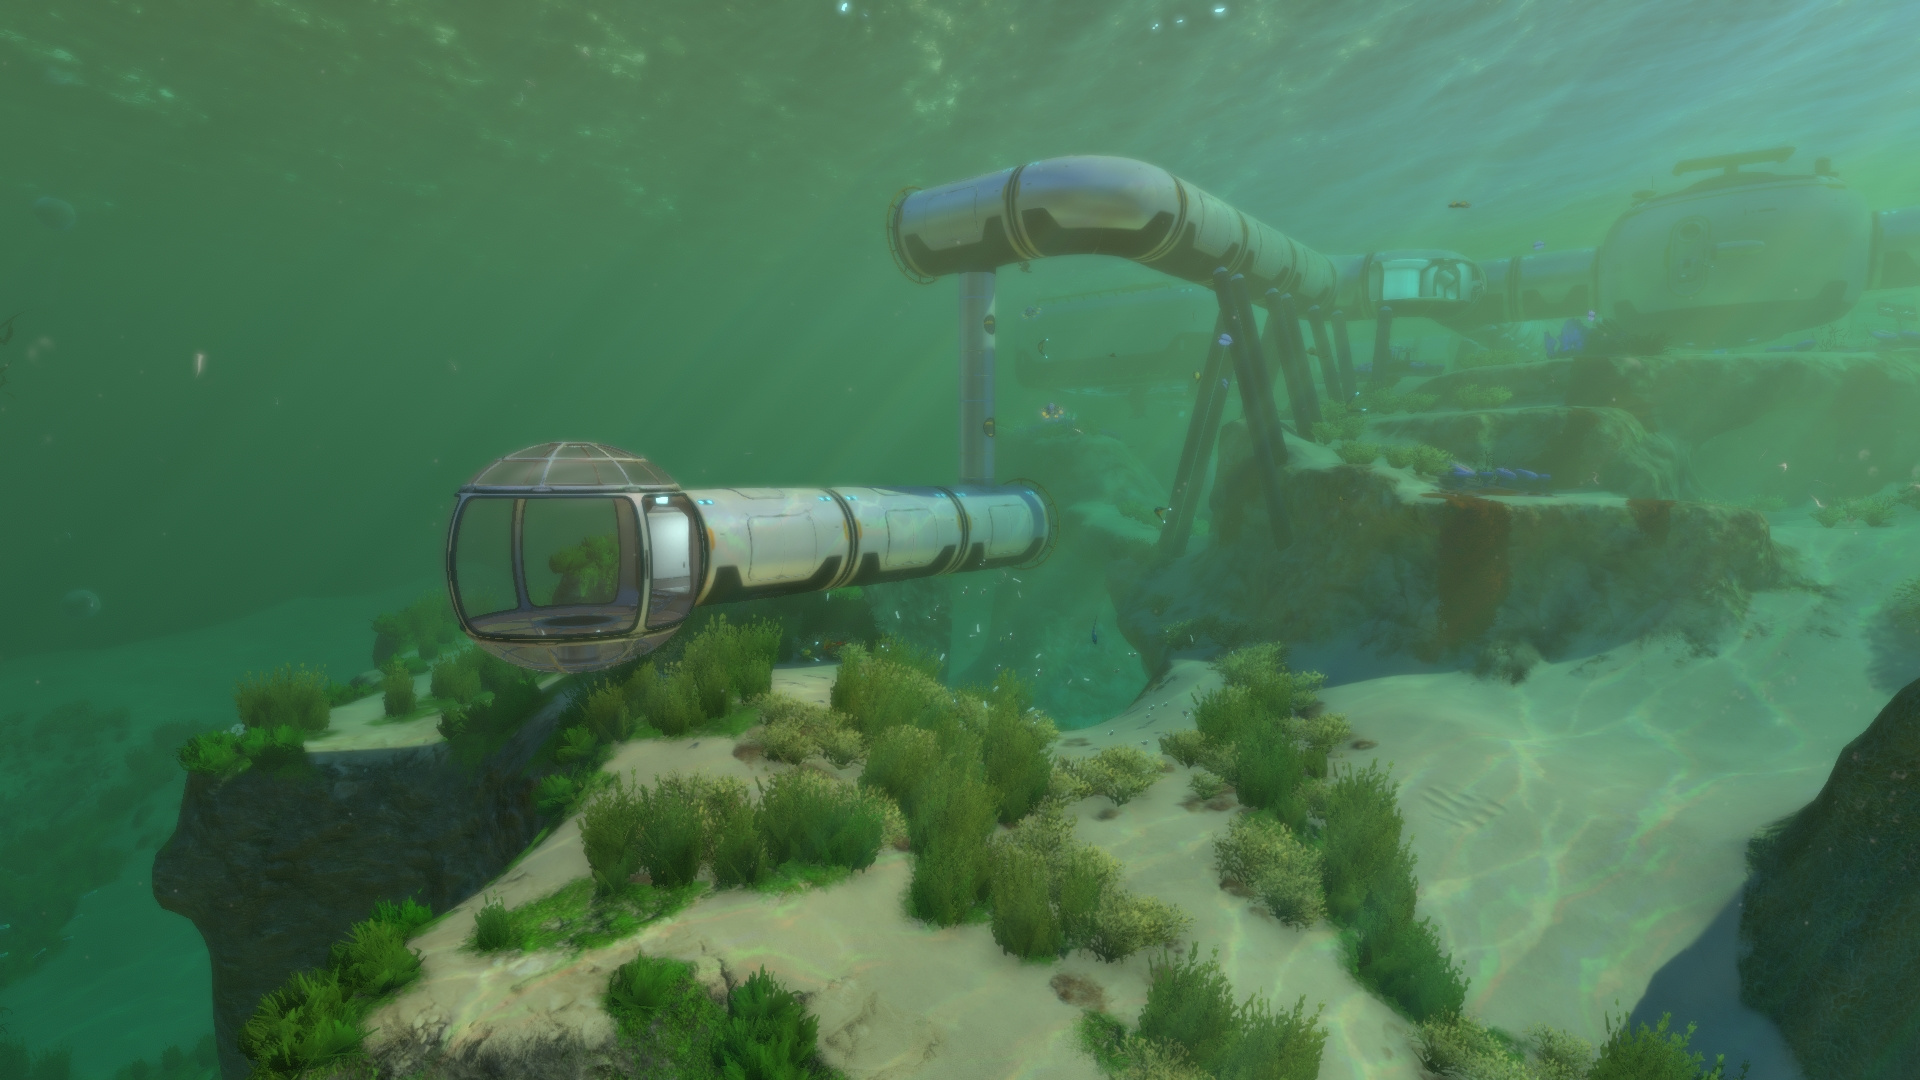 subnautica scuba unknown worlds drowning games quarter to